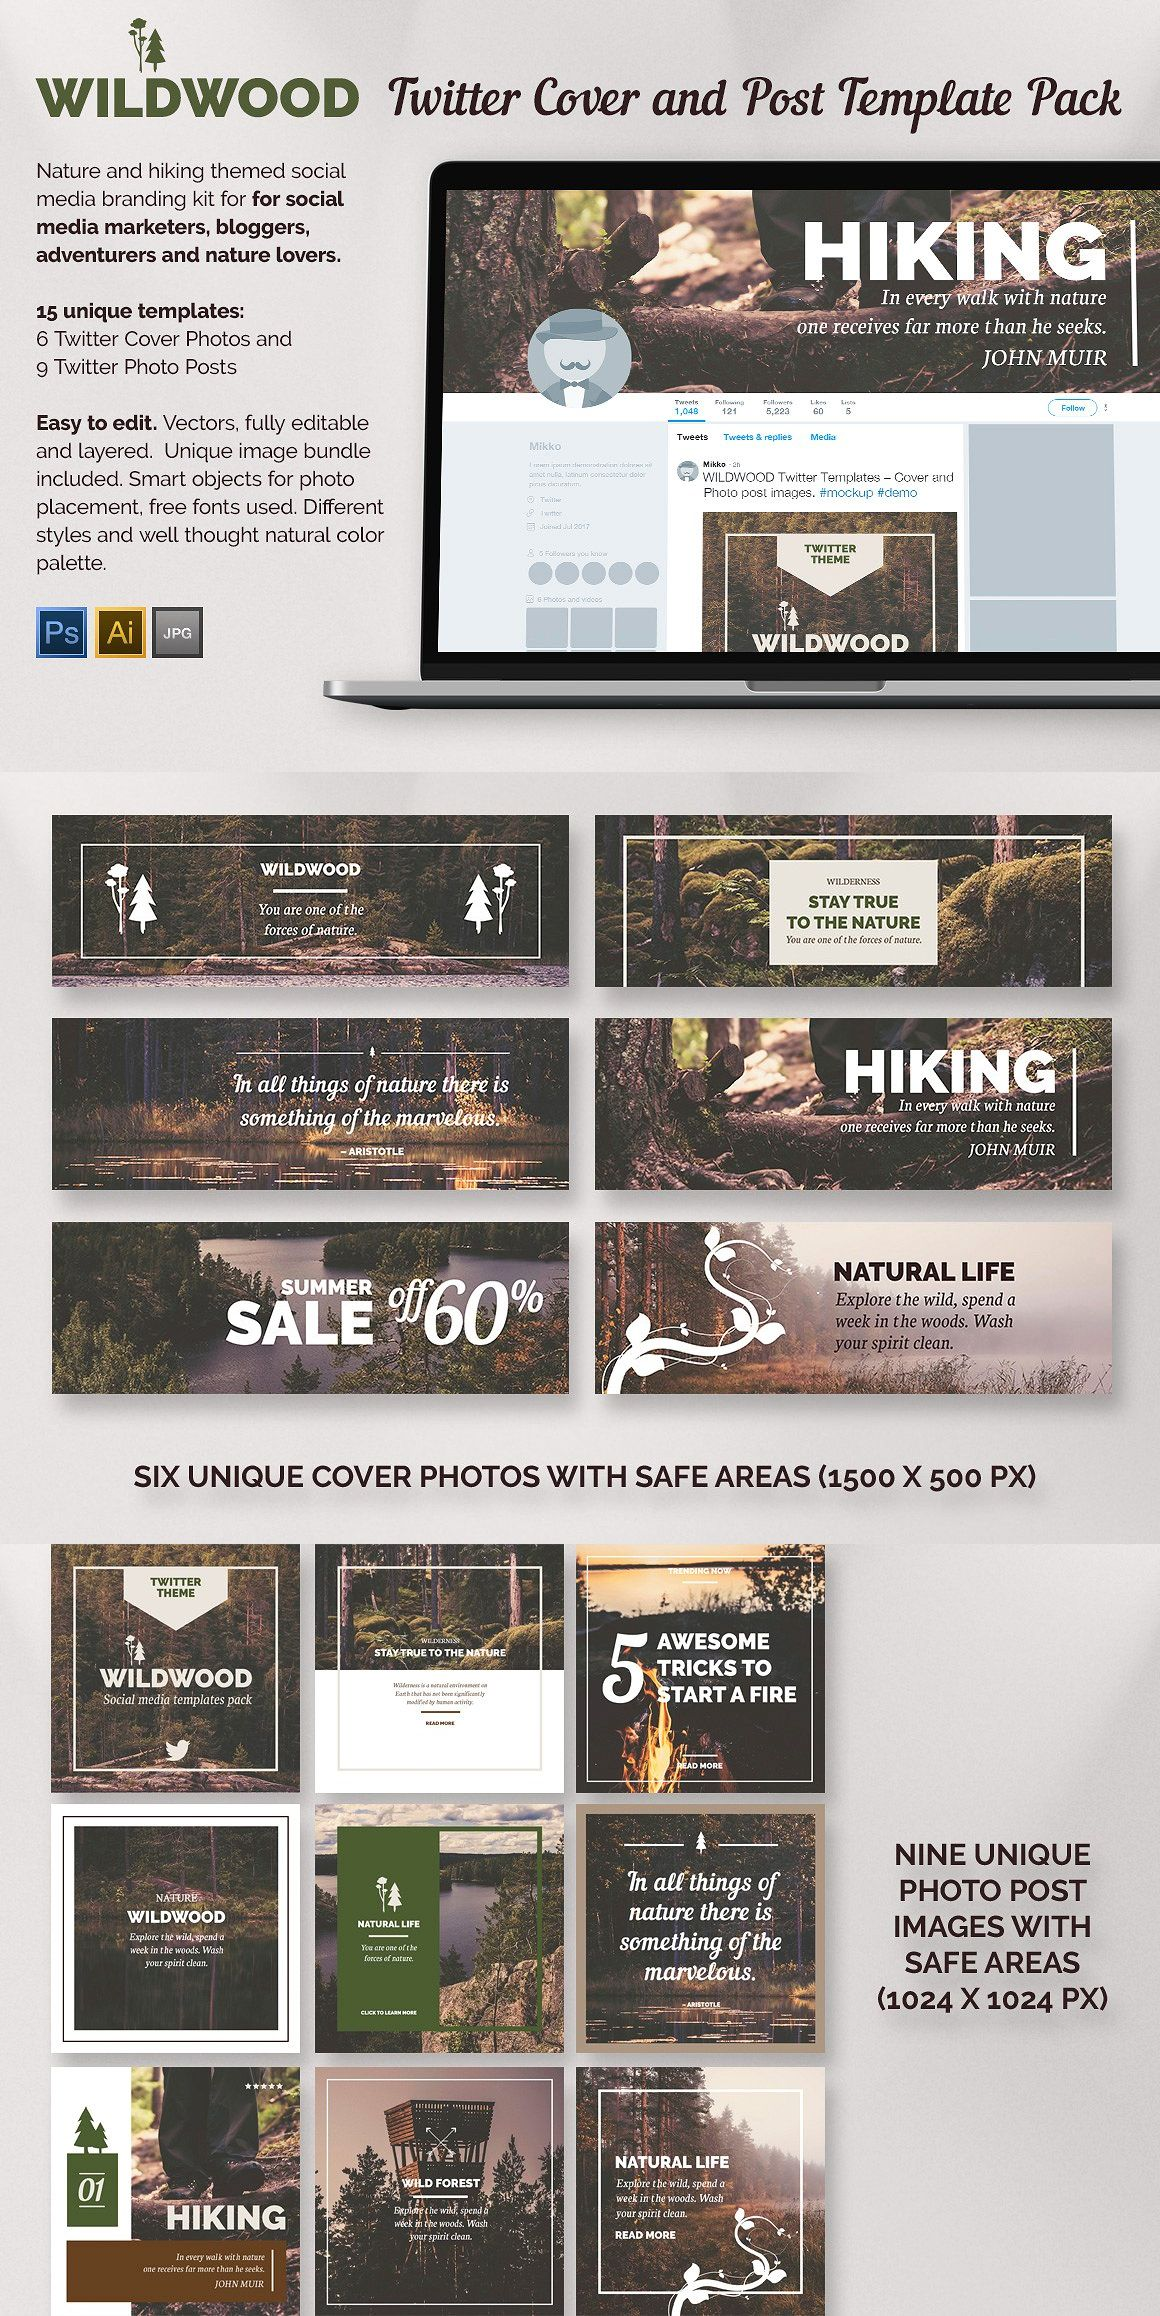 wildwood twitter templates pack psd social media templates